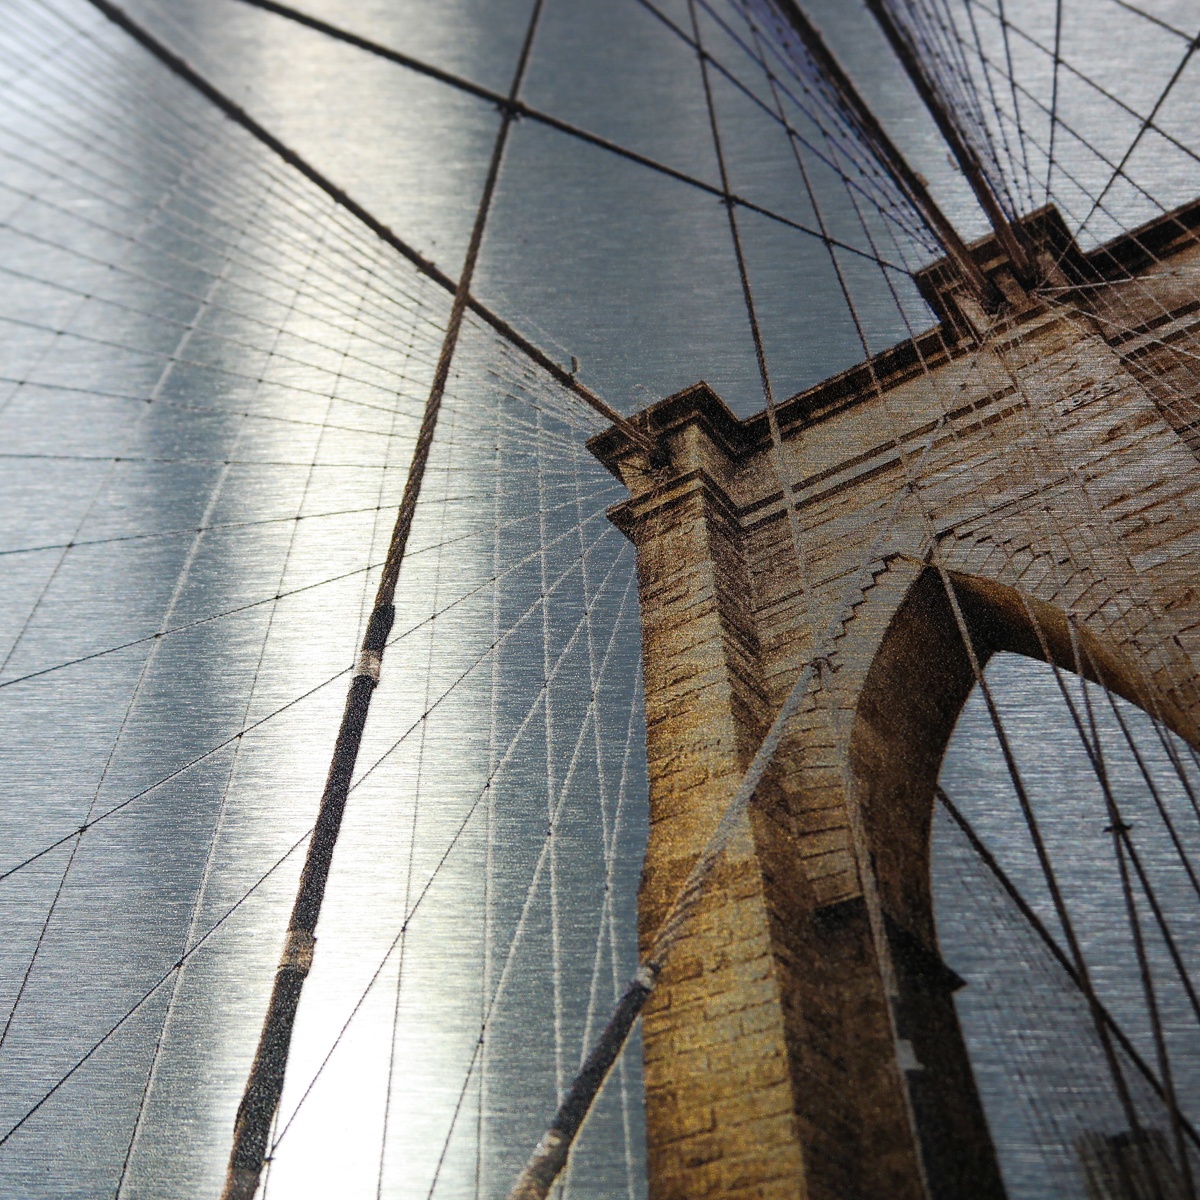 Dibond metal print bridge shows off brushed metal prints beautifully